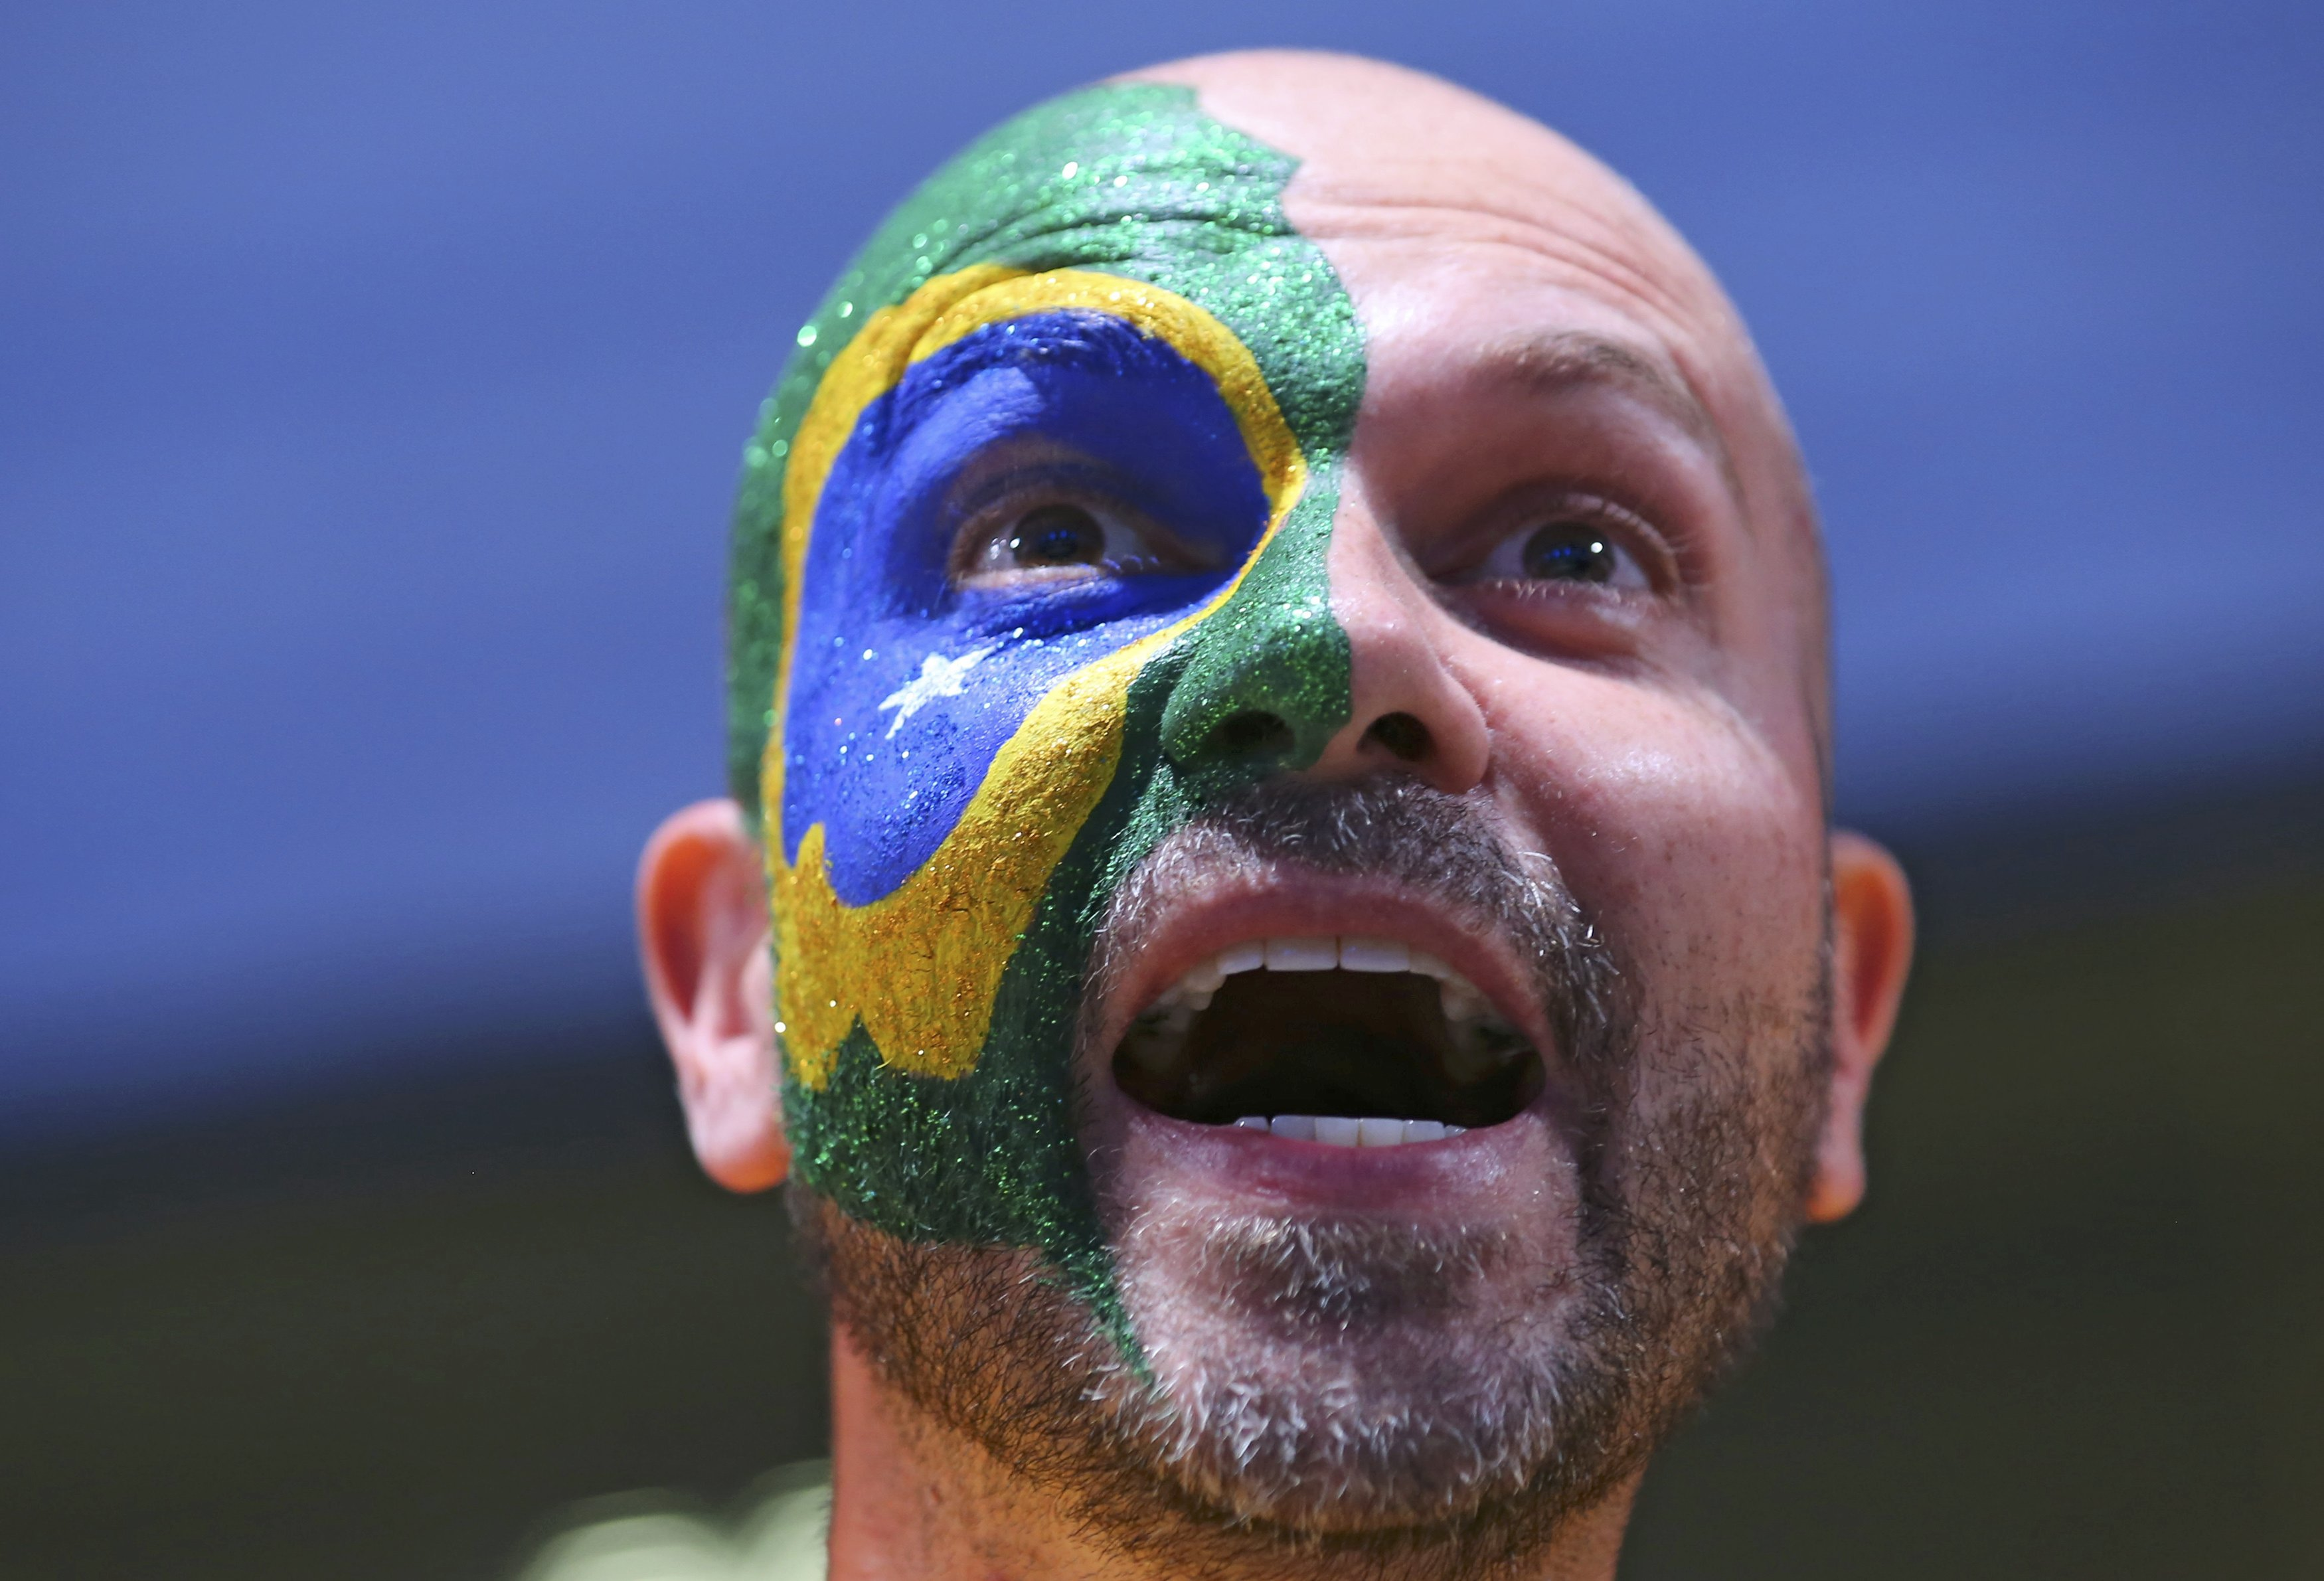 2016 Rio Olympics - Opening ceremony - Maracana - Rio de Janeiro, Brazil - 05/08/2016. Brazilian fan before the opening ceremony. REUTERS/Mike Blake FOR EDITORIAL USE ONLY. NOT FOR SALE FOR MARKETING OR ADVERTISING CAMPAIGNS.